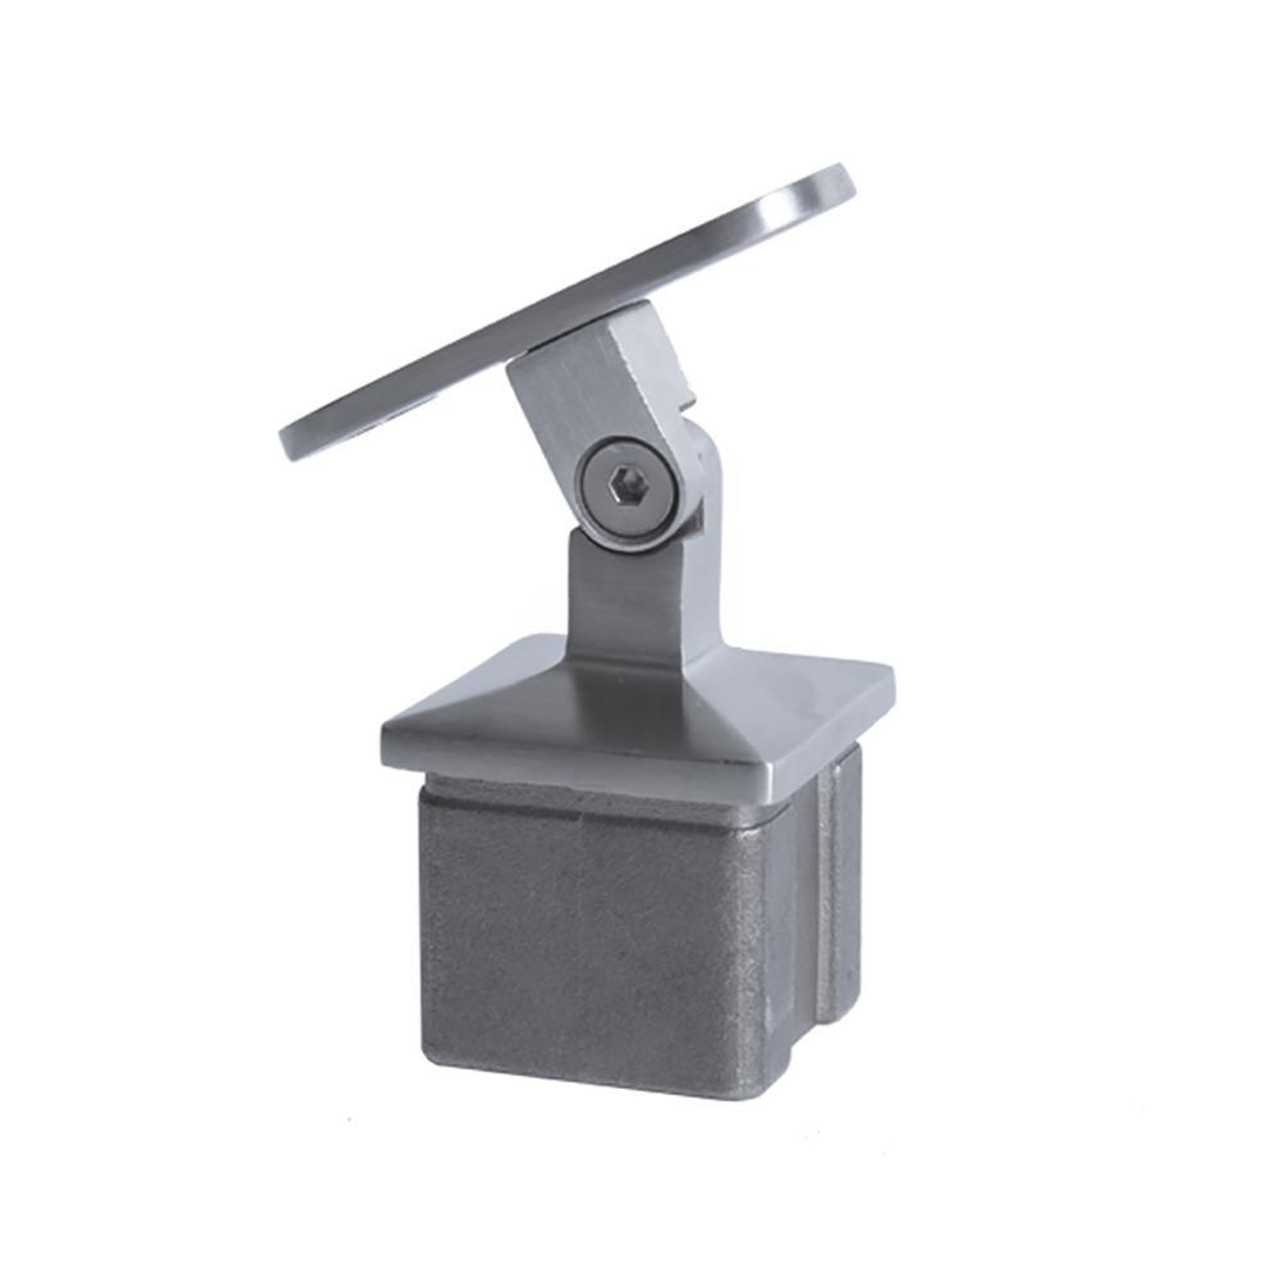 Adjustable Square Post Handrail Support ( AX20.005.031.A.SP)